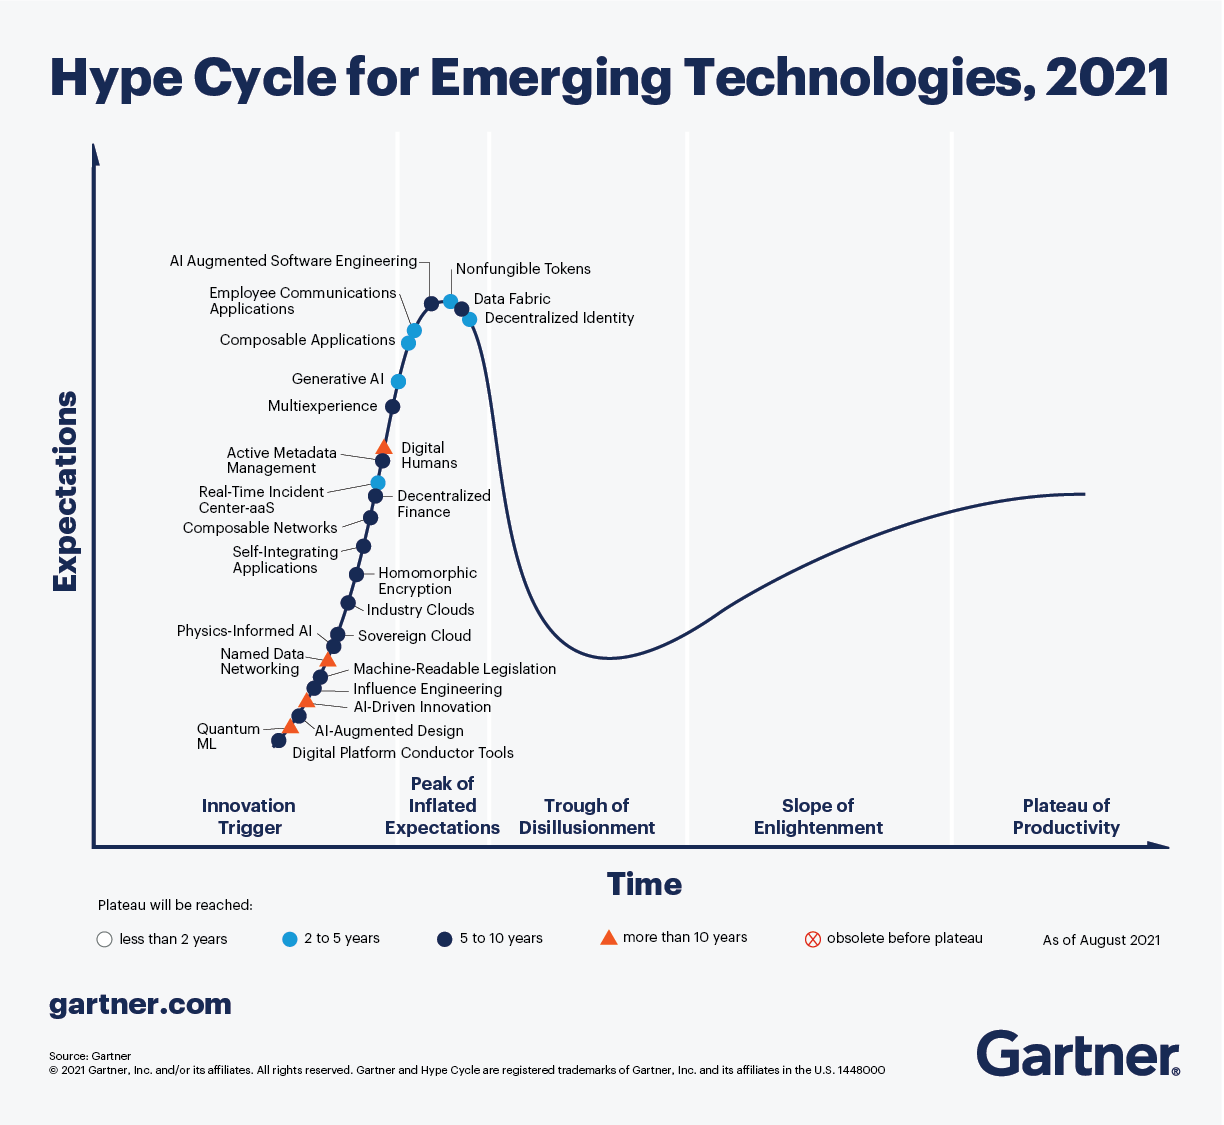 Hype Cycle for Emerging Technologies, 2021